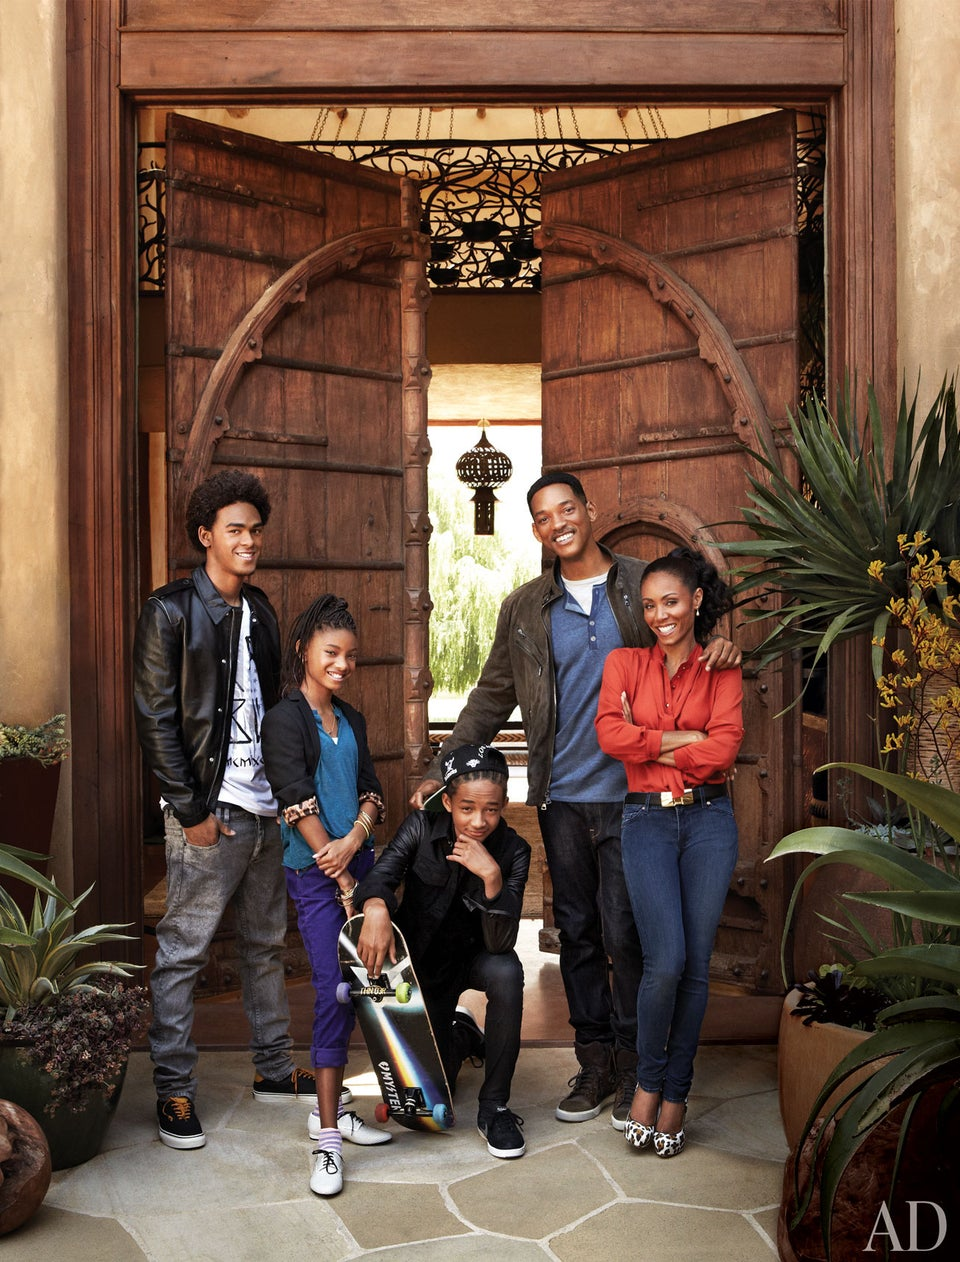 Jada and Will Show off Their Lavish Home in 'Architectural Digest'